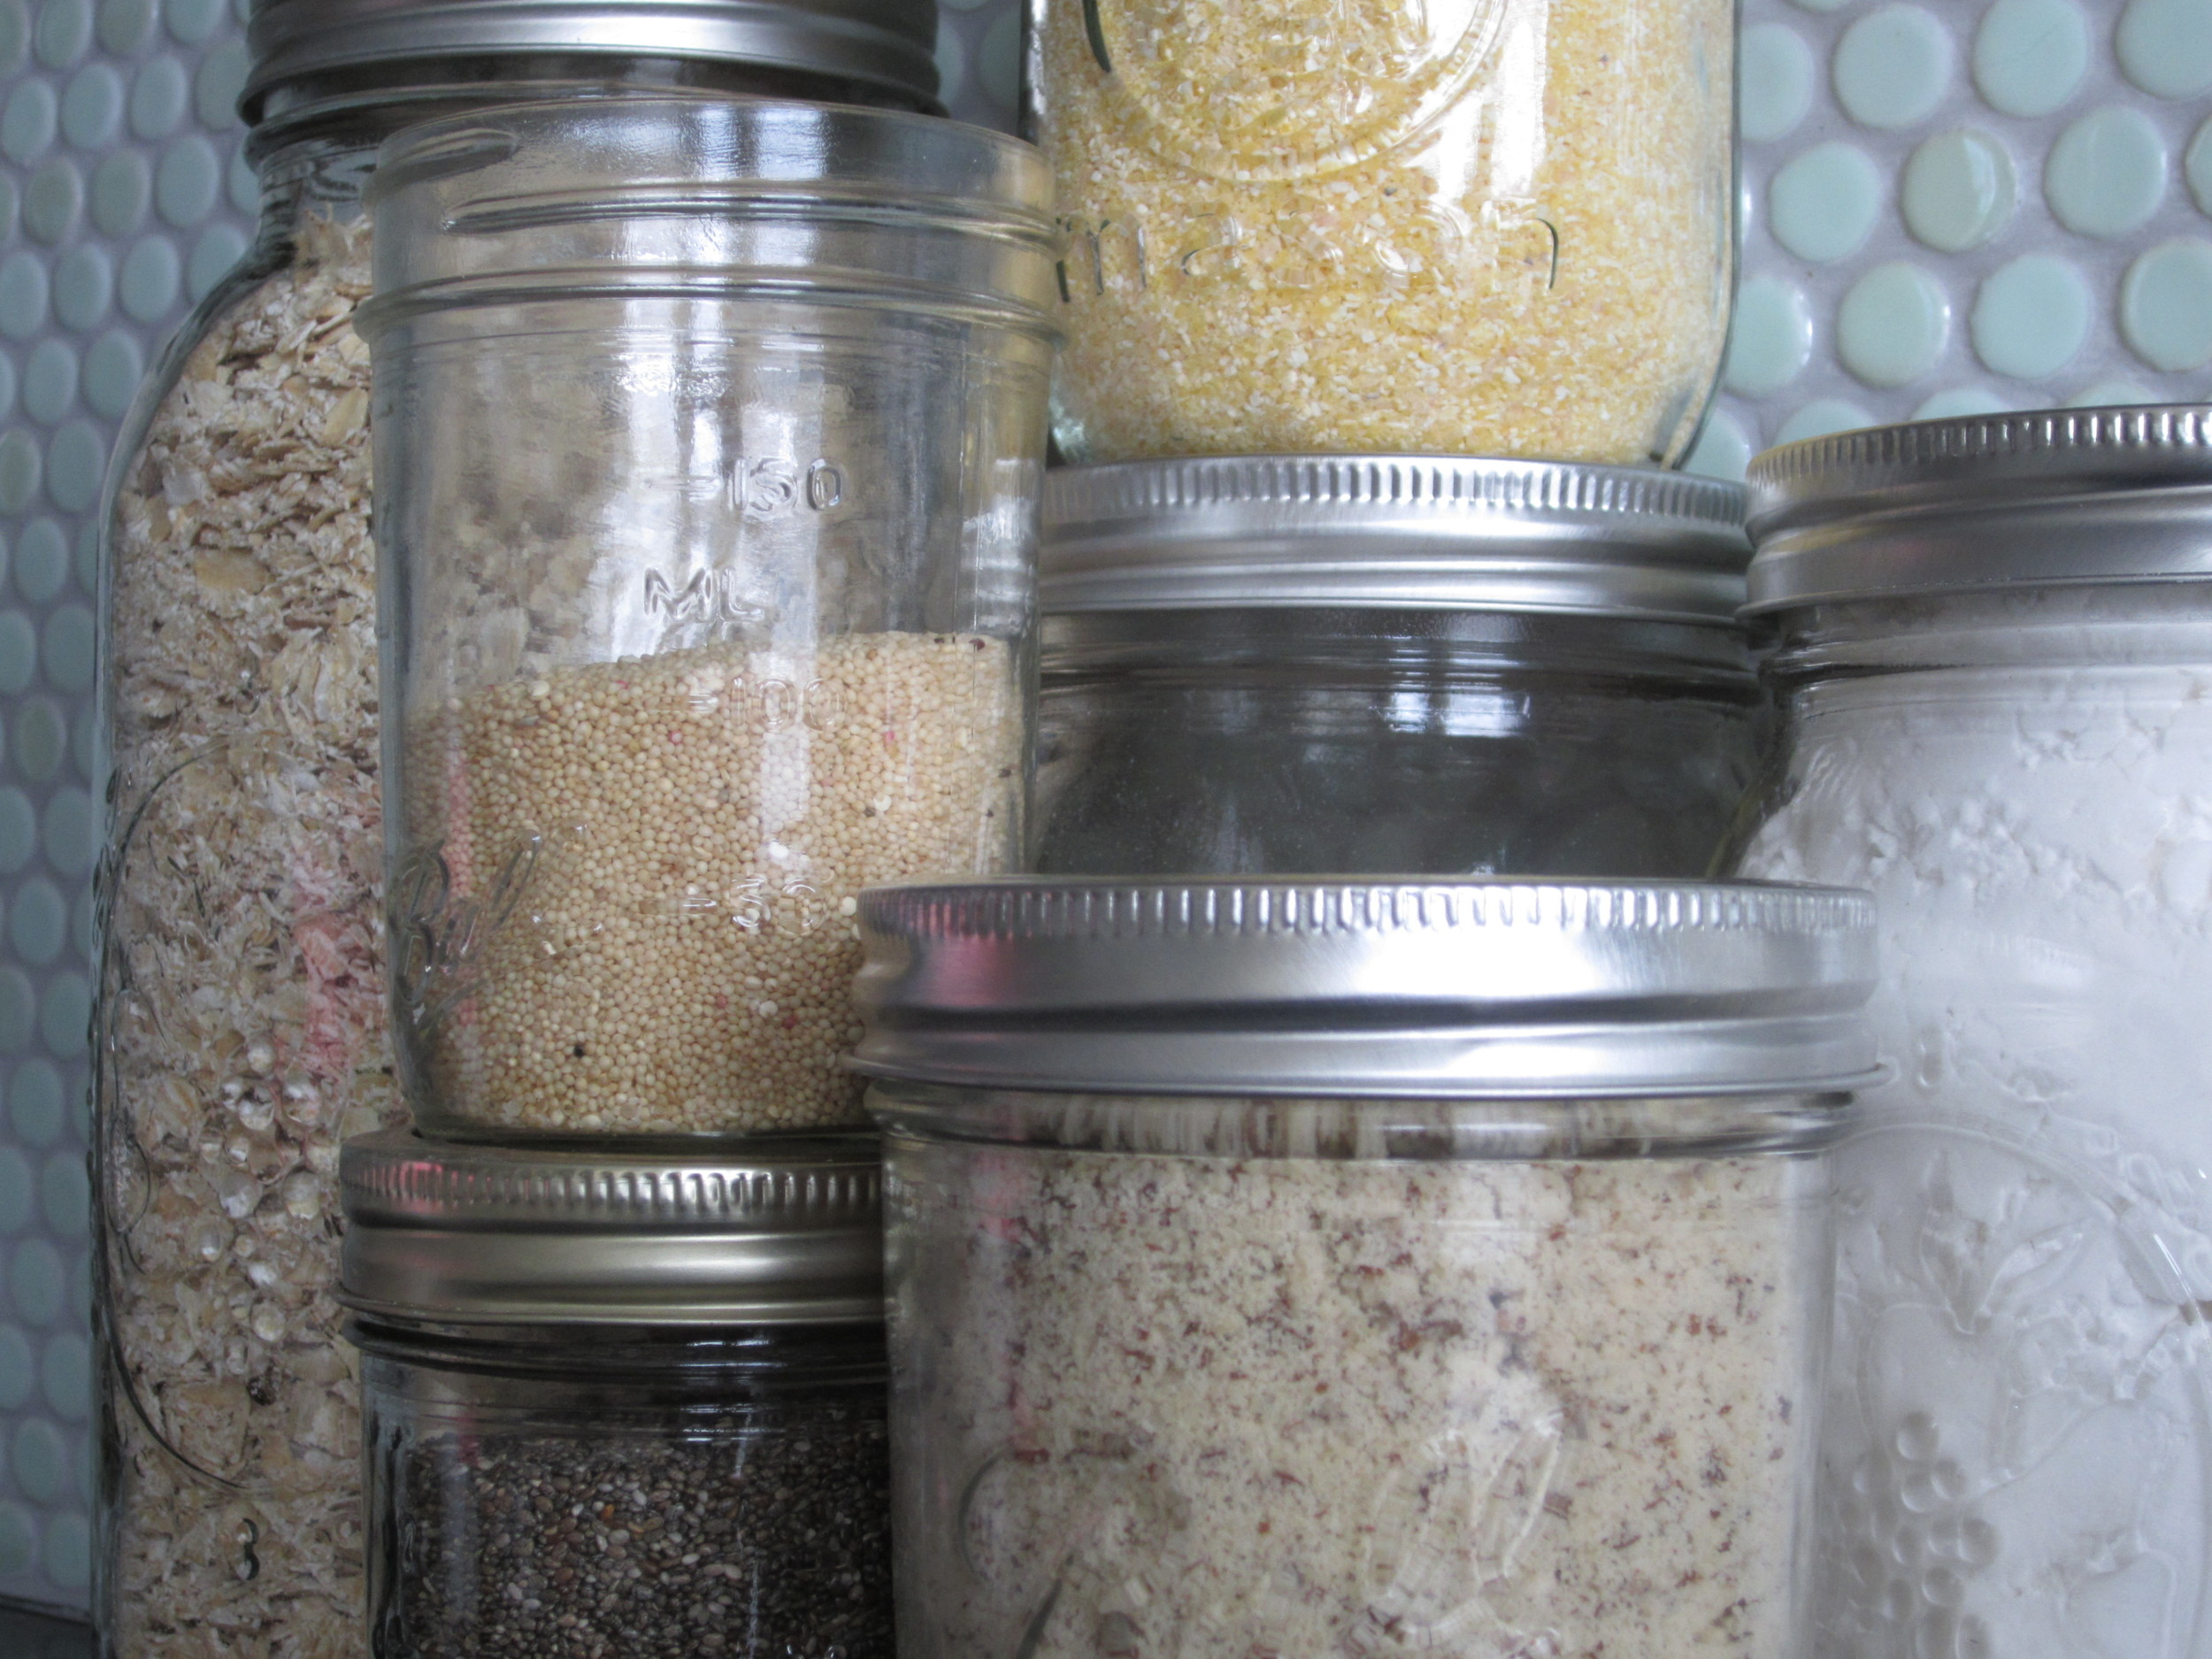 Which alternative flours make the most successful low-FODMAP, gluten-free baked goods?